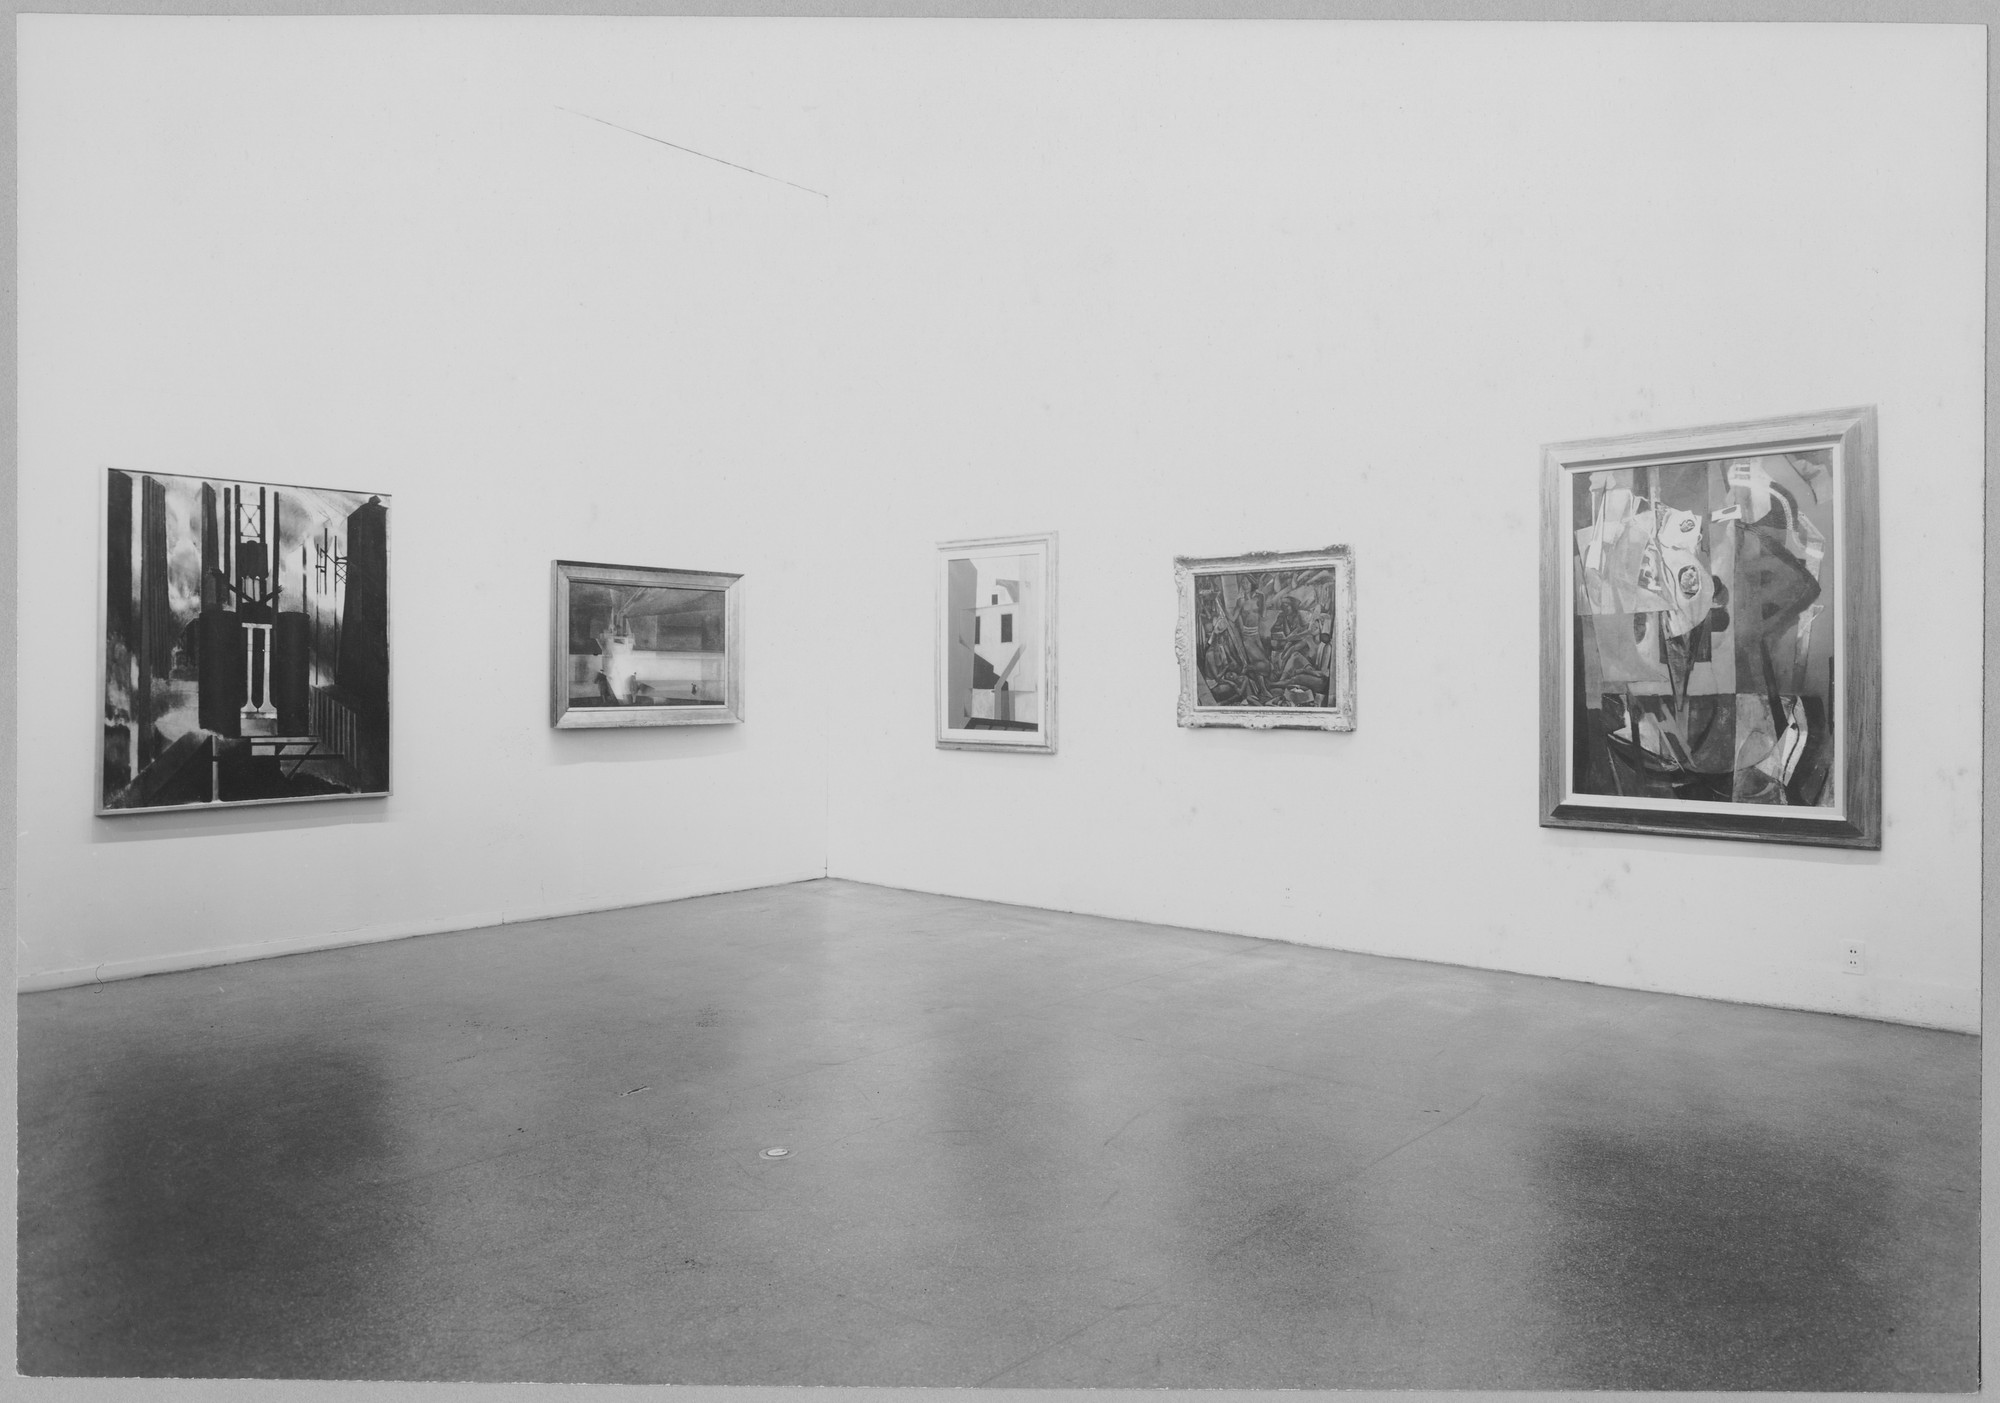 "Installation view of the exhibition, ""American Paintings from the Museum Collection."" December 23, 1948–March 13, 1949. Photographic Archive. The Museum of Modern Art Archives, New York. IN396.1. Photograph by Soichi Sunami."